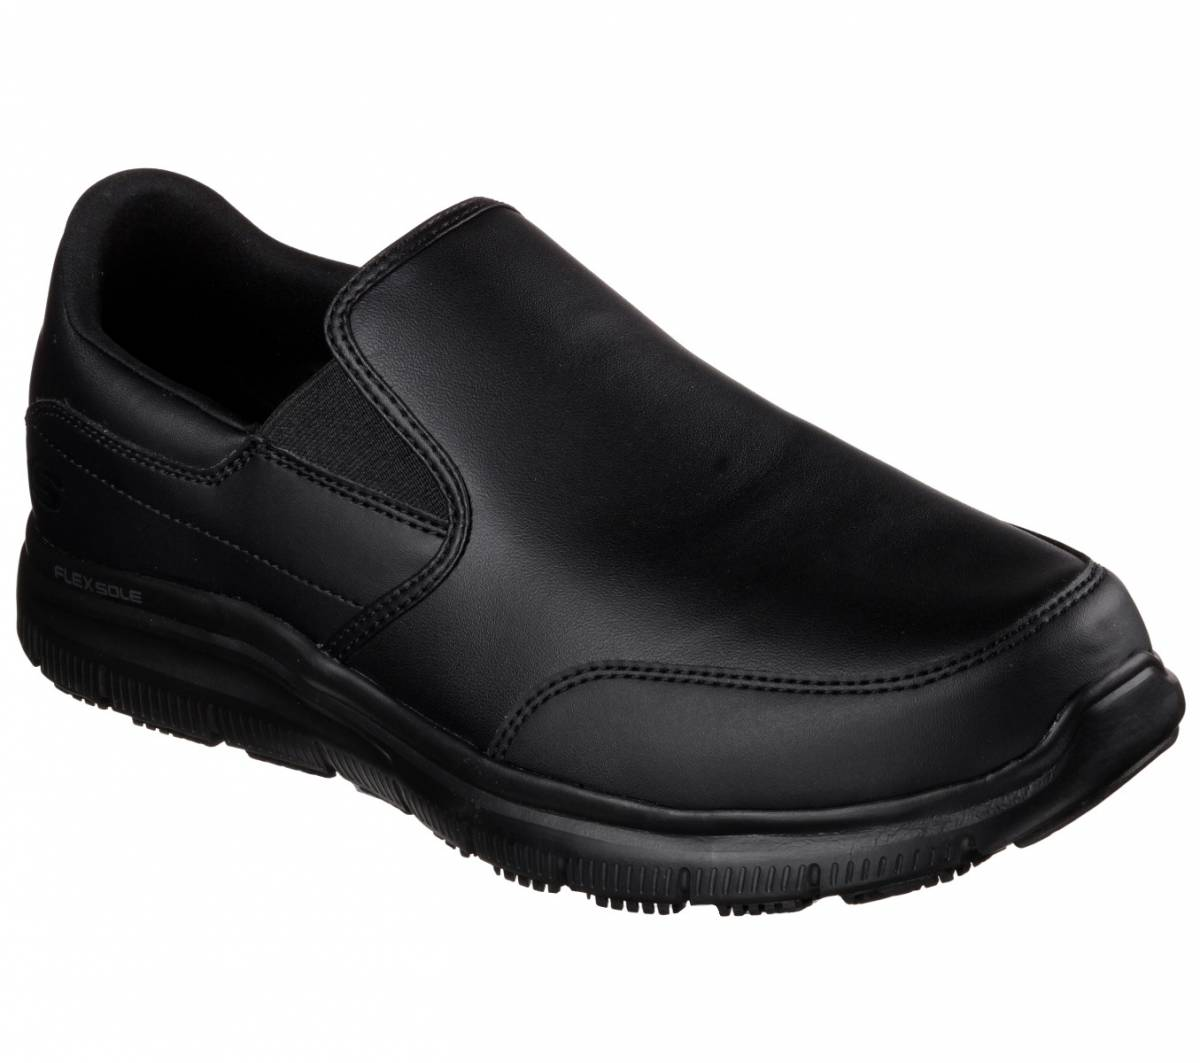 Skechers Flex Advantage Slip-On Work Shoes